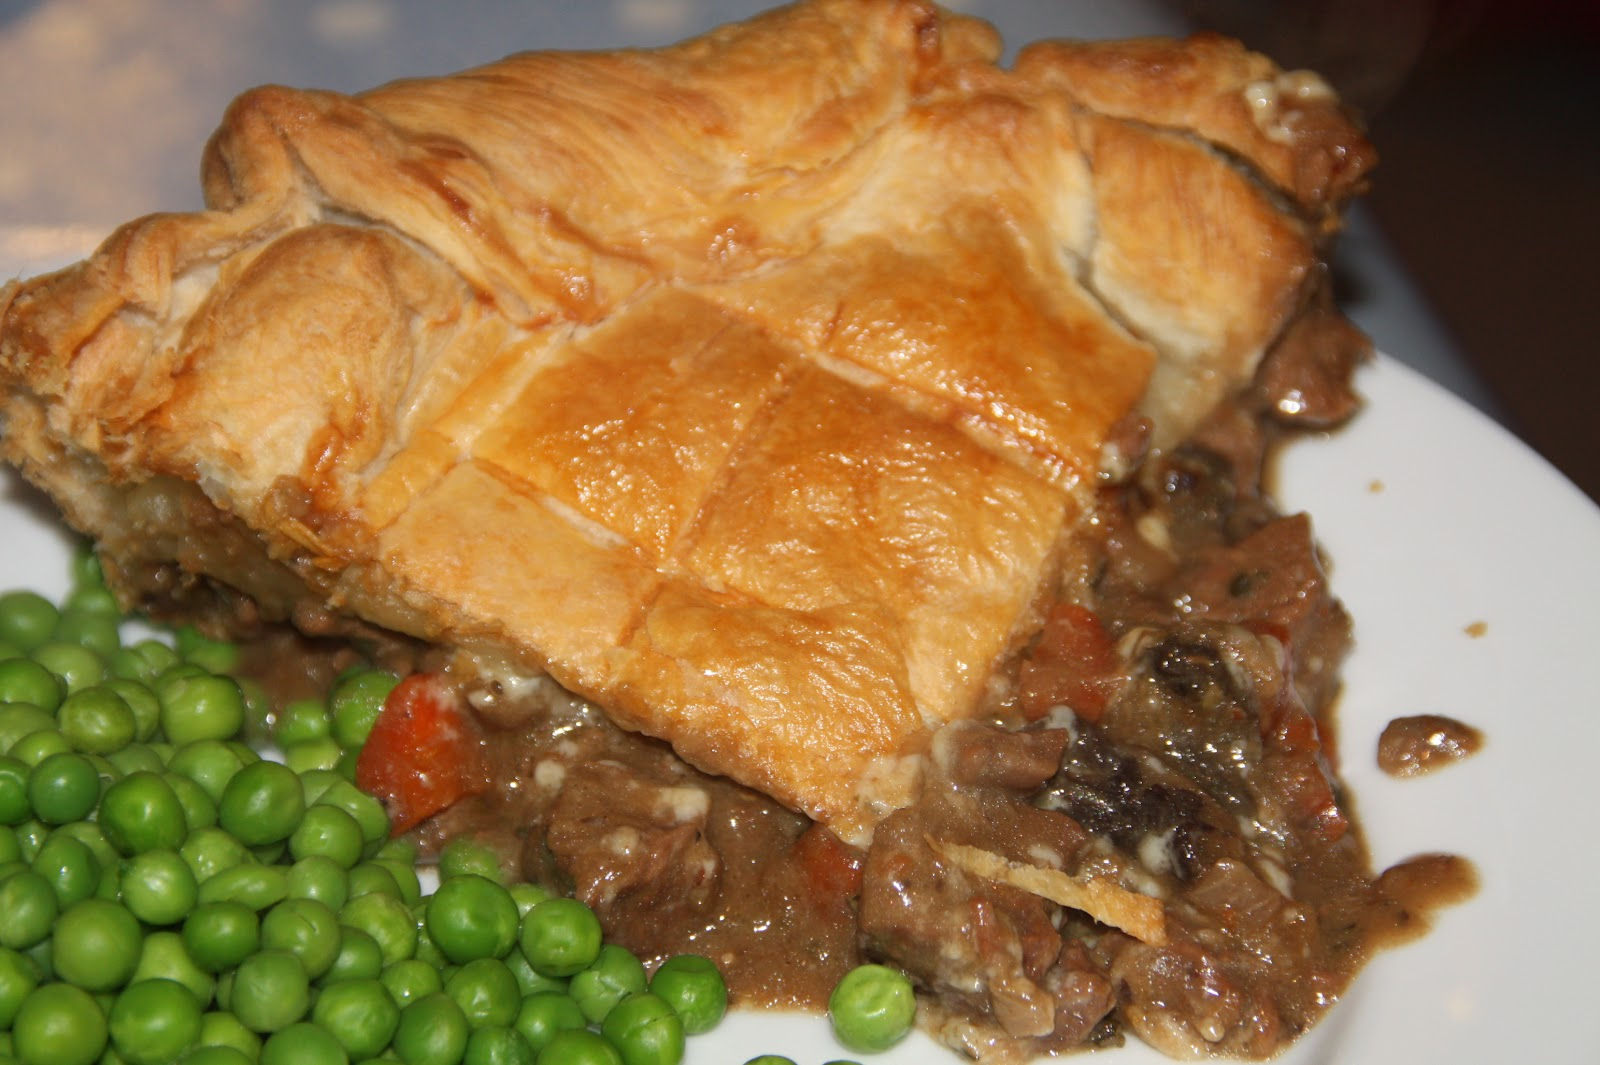 At Home with Mrs M!: Jamie O's Steak, Guinness and Cheese Pie